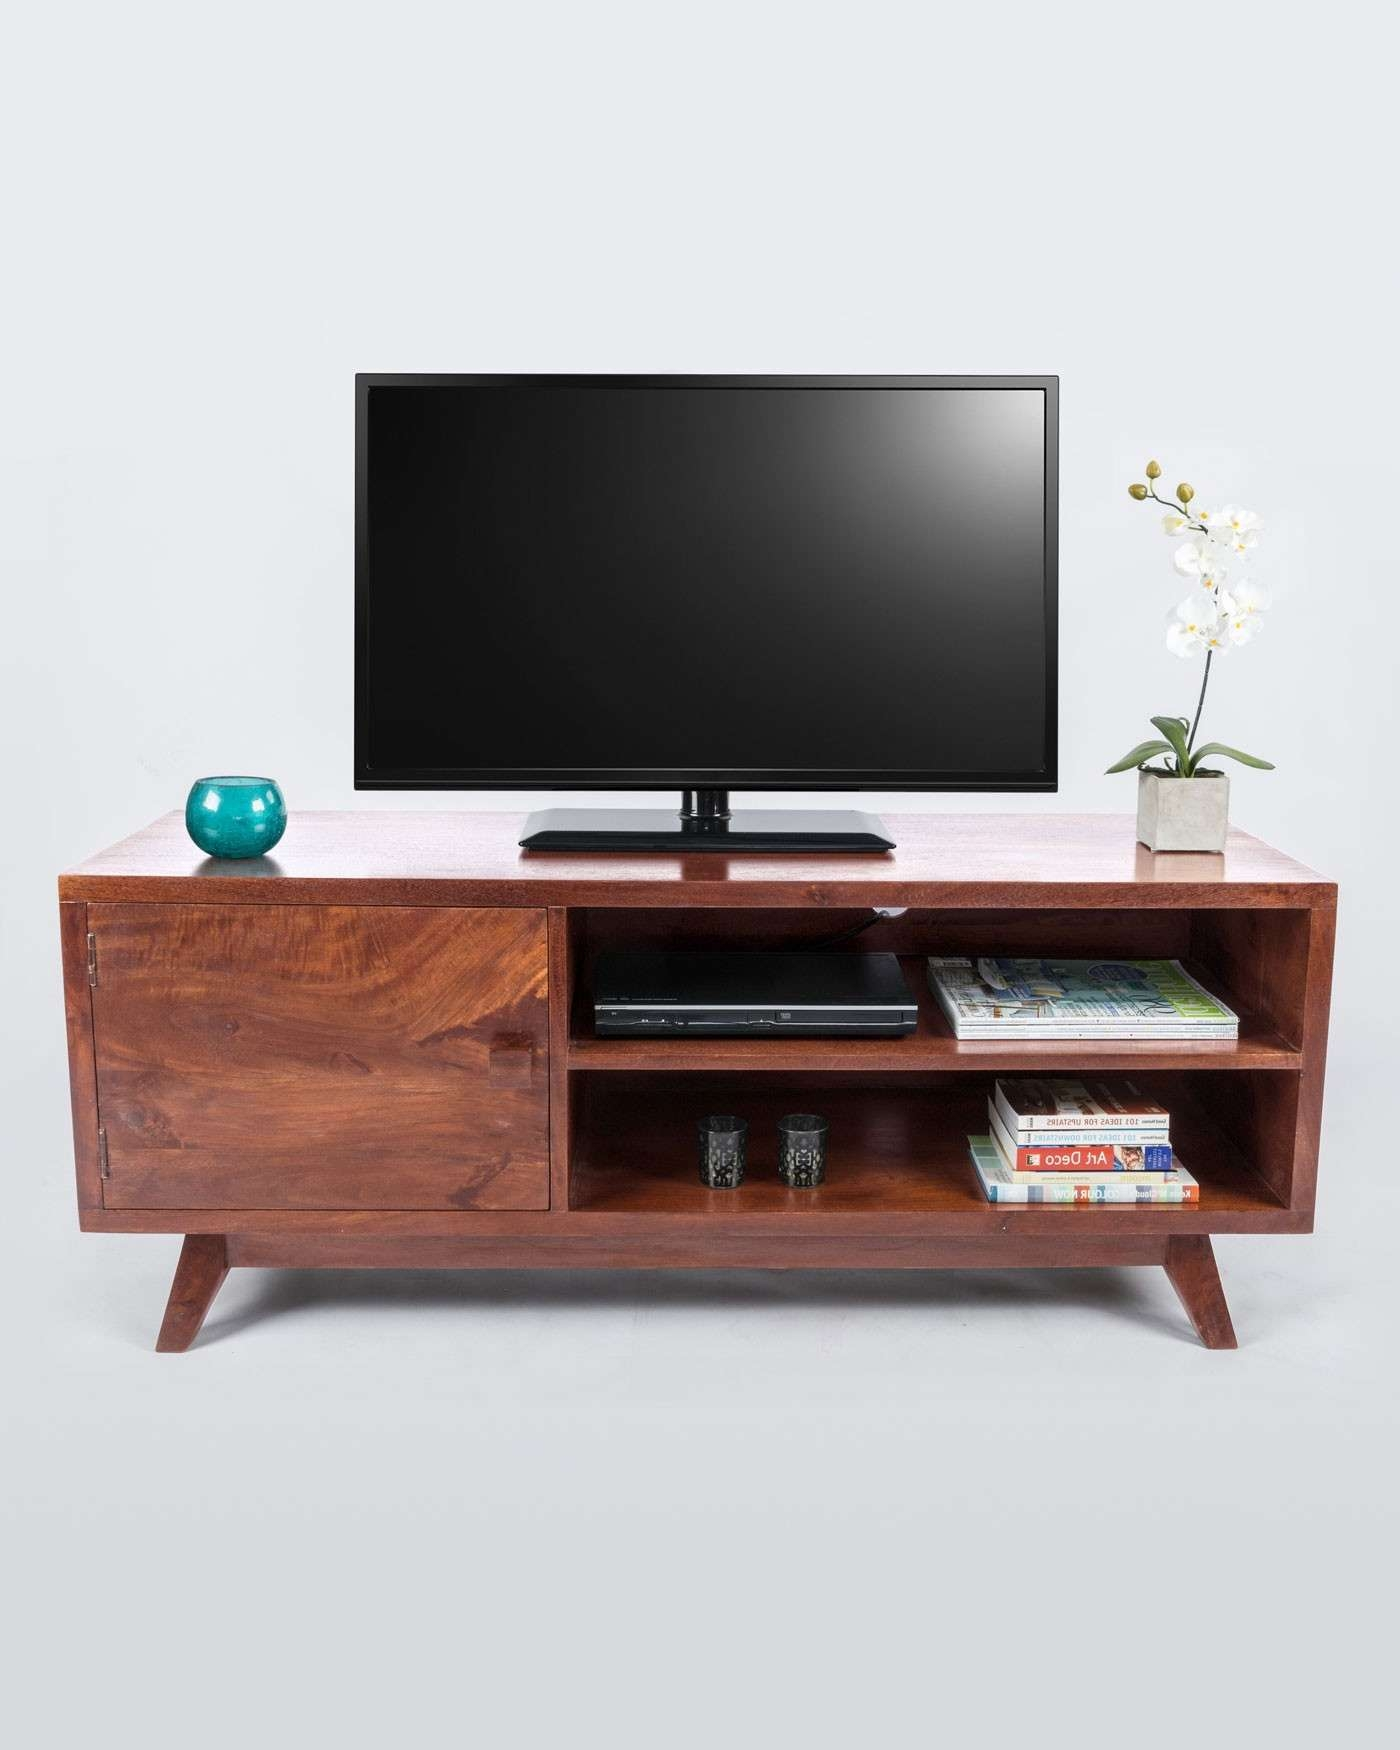 Dark Wood Tv Stand With Shelf Retro Design 100% Solid Wood Within Dark Tv Stands (View 9 of 15)